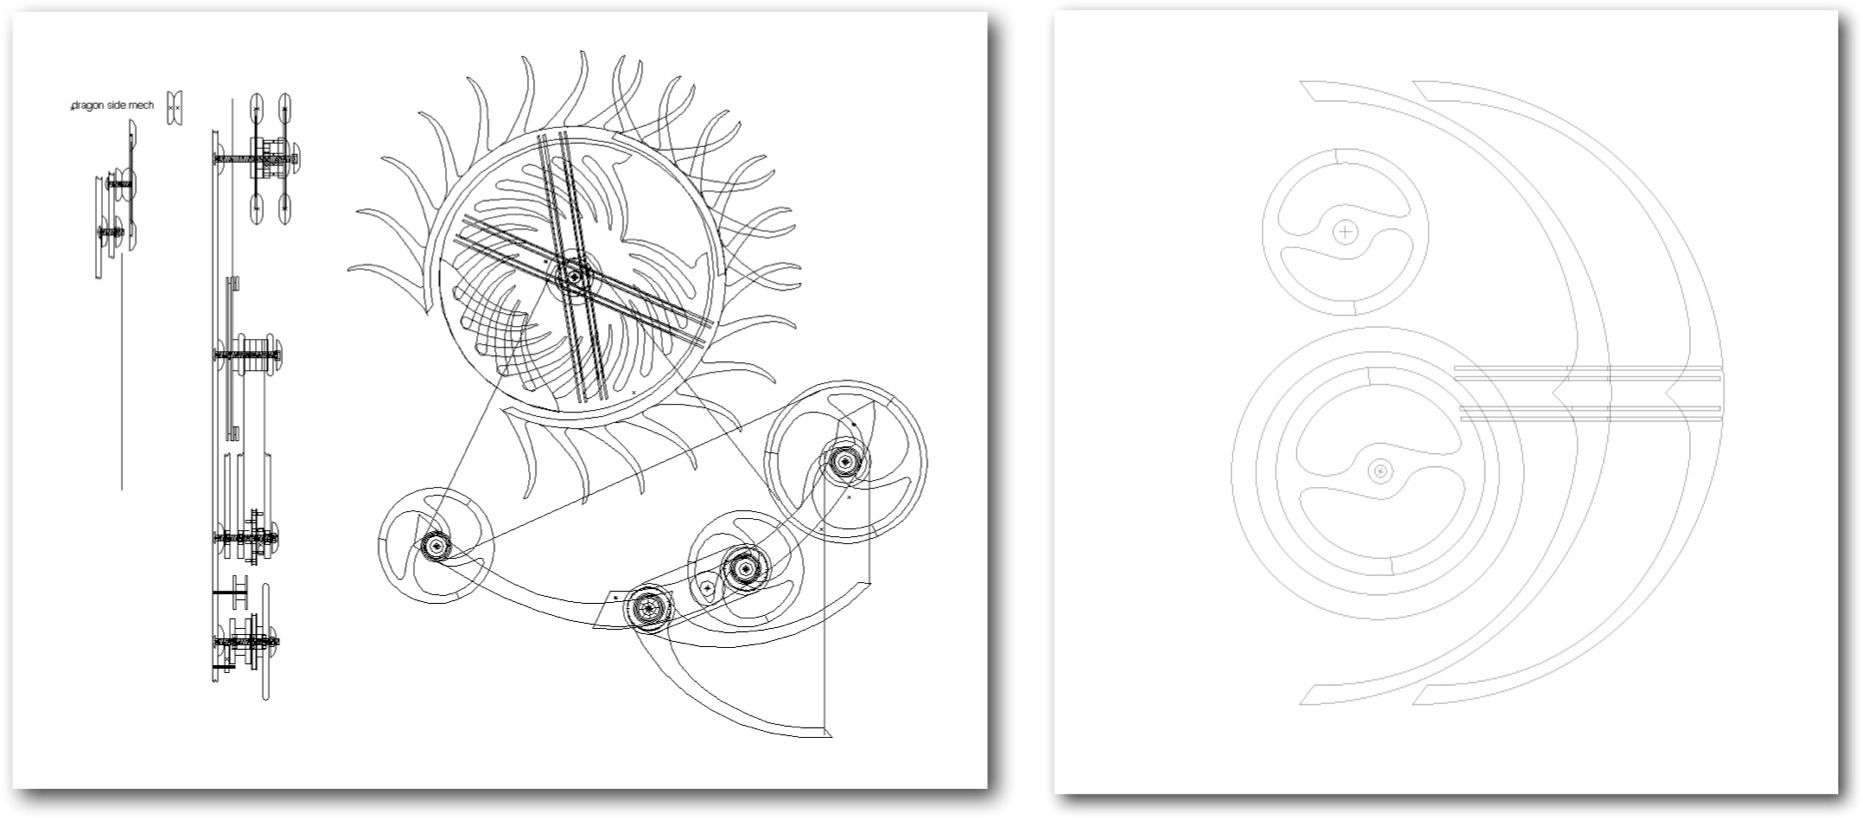 Design Drawings Completed By Kinetic Sculptor David C Roy Of Wood That Works Kinetic Sculpture Kinetic Art Sculpture